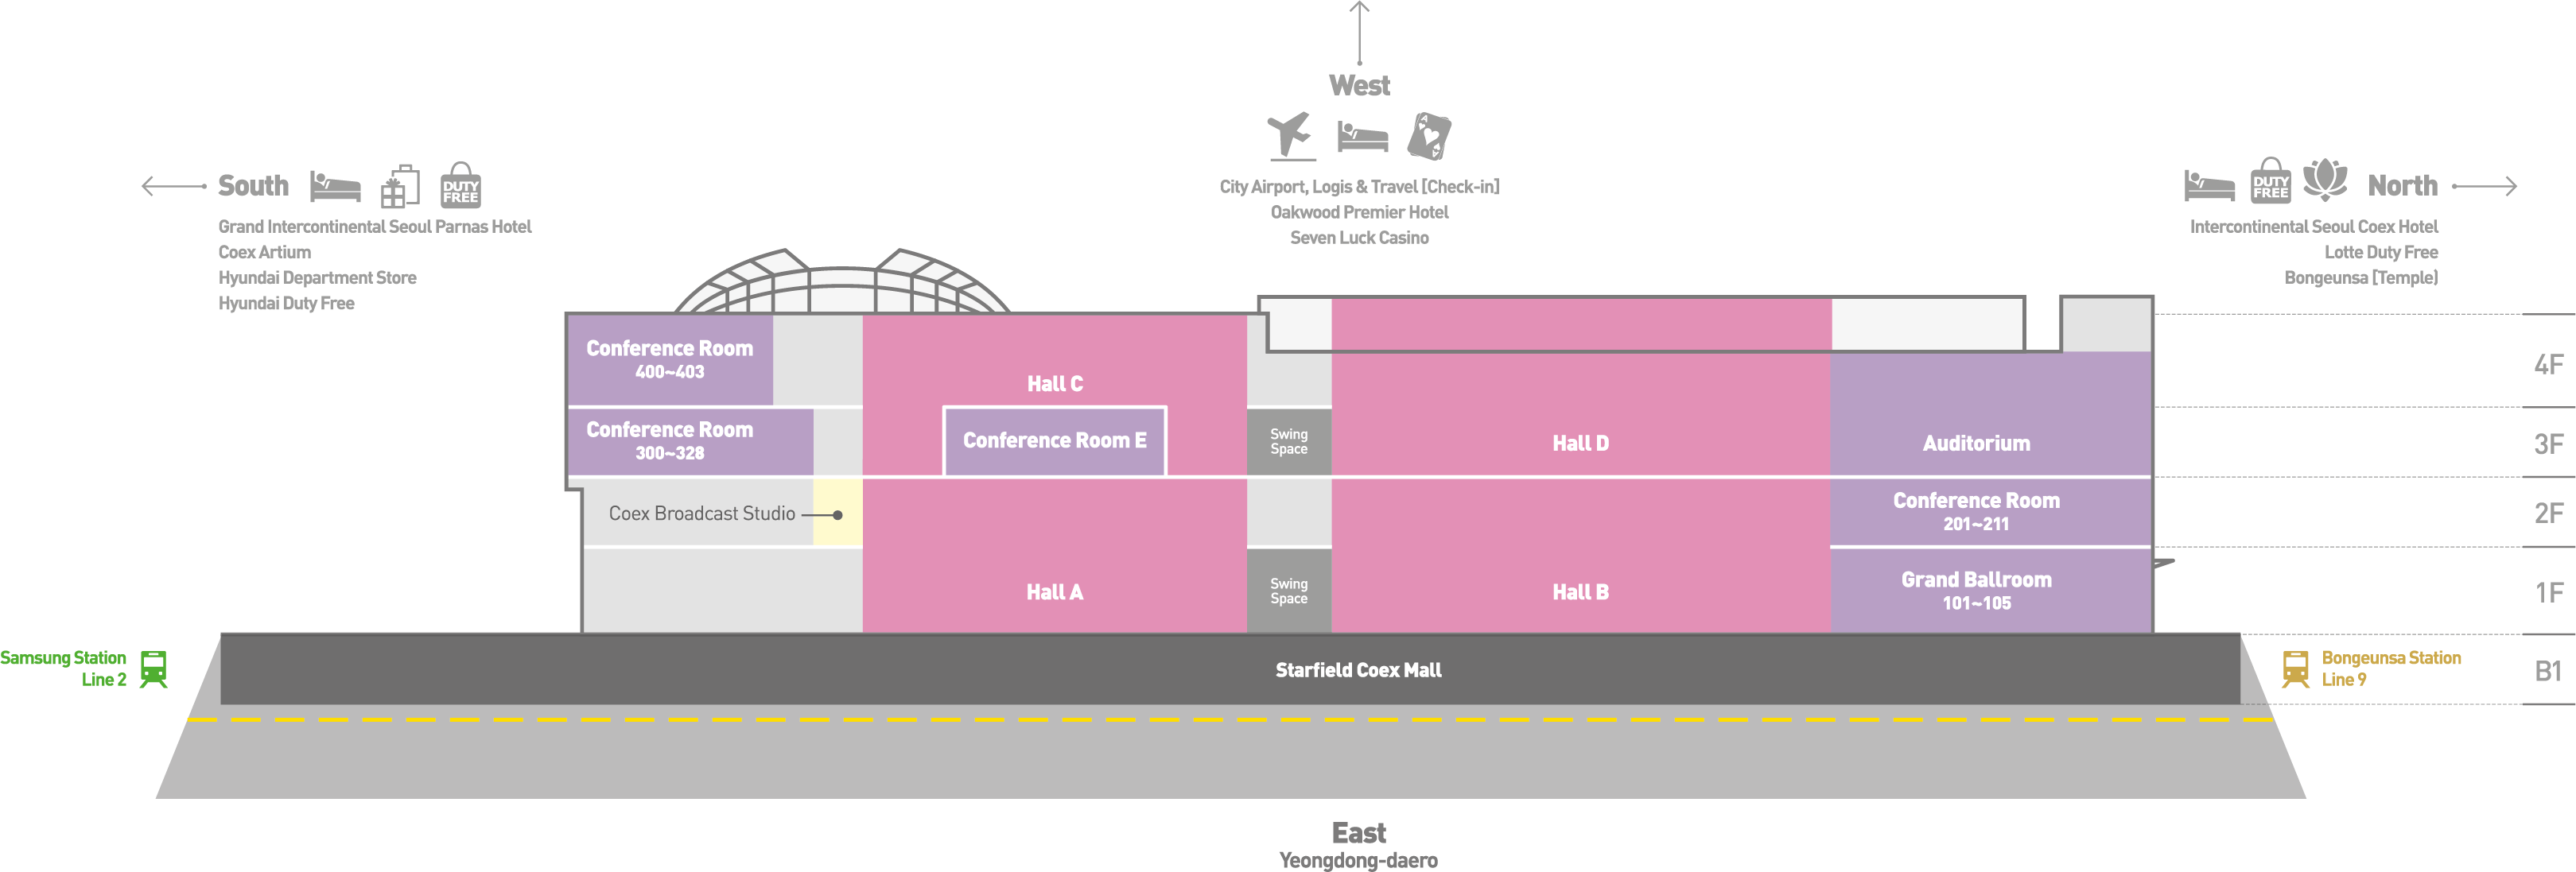 COEX-ENTRANCE-AND-VENUE-LEVELS-MAP.png